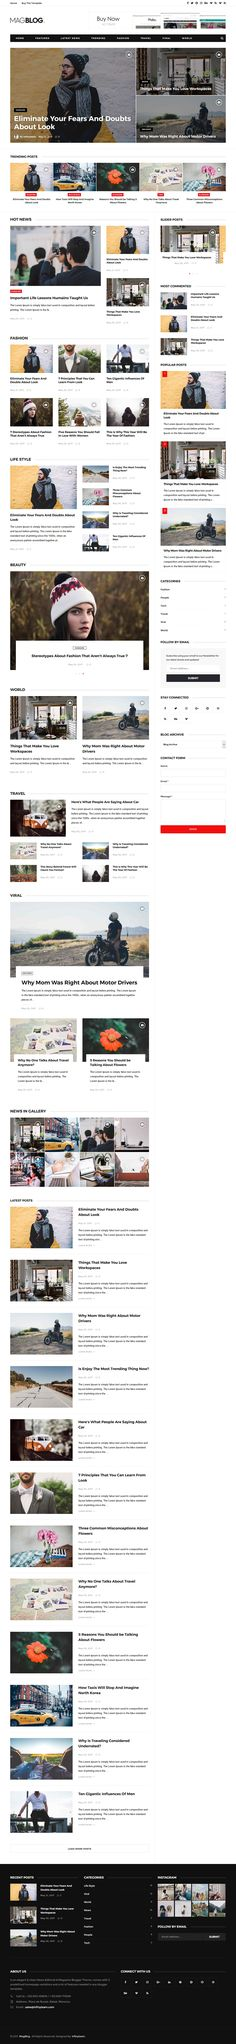 MagBlog Blogger Template:  MagBlog is a clean and elegant, user friendly/customizable, fast-loading, fully responsive, flexible and functional blogger theme excellent for news, newspapper, magazine, tech, publishing and review websites/blogs. MagBlog Blogger Template uses best SEO practices, and on top of that, it's easy to use and to setup by One-Click demo install.  http://www.premiumbloggertemplates.com/magblog-blogger-template/